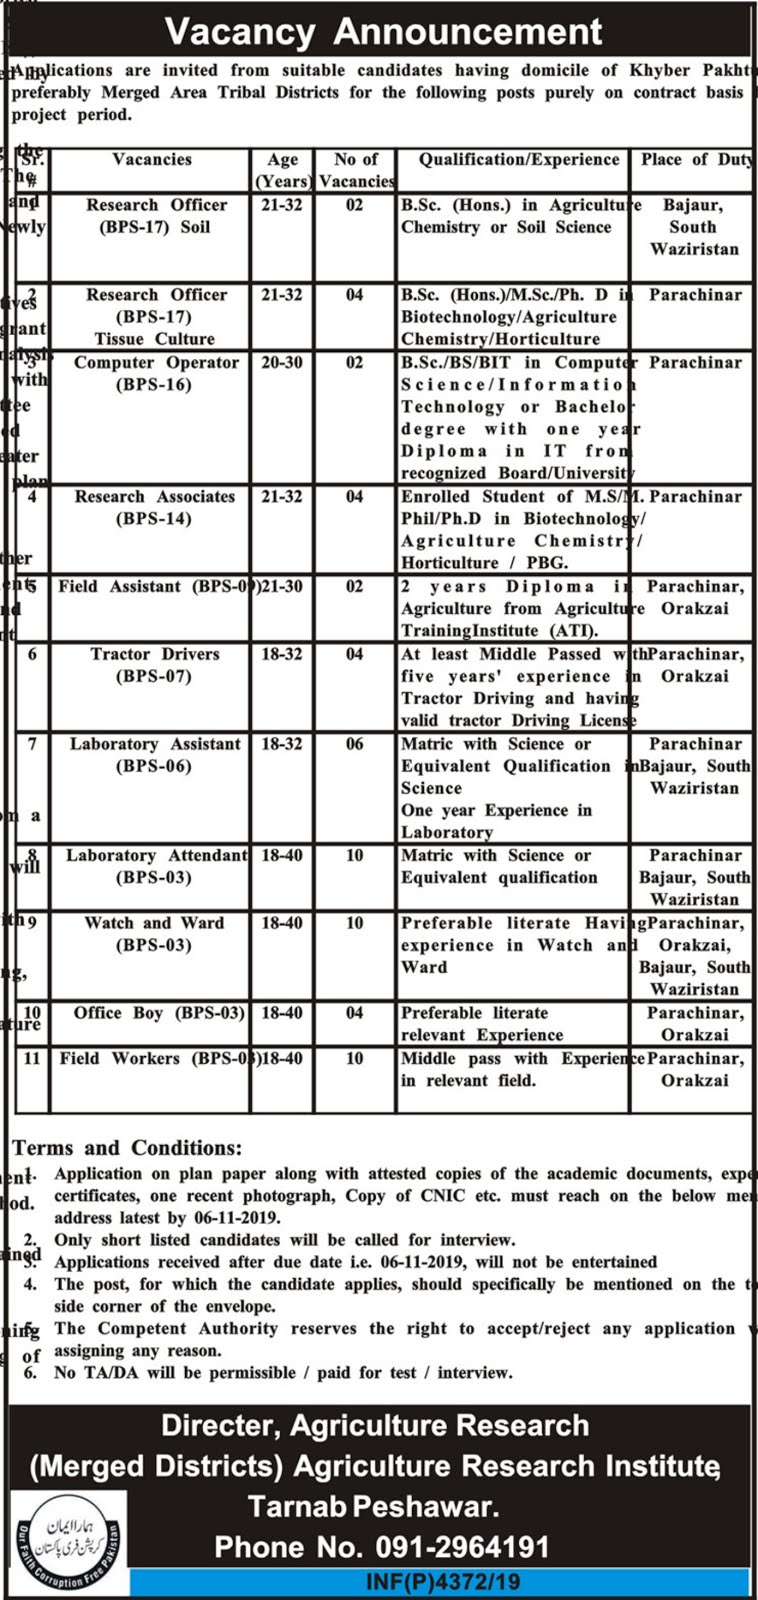 Agriculture Department Govt Of KPK Jobs 2019 (258 Posts) agriculture department kpk jobs 2019 application form agriculture department kpk jobs 2018 agriculture department kpk jobs 2019 form agriculture jobs in peshawar kpk agriculture jobs 2019 jobs in agriculture kpk agriculture jobs in pakistan 2019 agriculture department jobs 2019 kpk agriculture department peshawar high court jobs test interview high court job form pakistan nab jobs 2019 www.khyberpakhtunkhwa.gov.pk jobs 2019 jobs in agriculture department punjab 2019 mehkma zarat jobs 2019 nts agriculture department peshawar water management jobs 2019 agriculture jobs in islamabad agriculture department sindh jobs 2018 agriculture department government of punjab inf(p)2675/19 www.khyberpakhtunkhwa.gov.pk 2019 www livestock kp gov pk khyber pakhtunkhwa department of agriculture salary of agriculture officer in pakistan